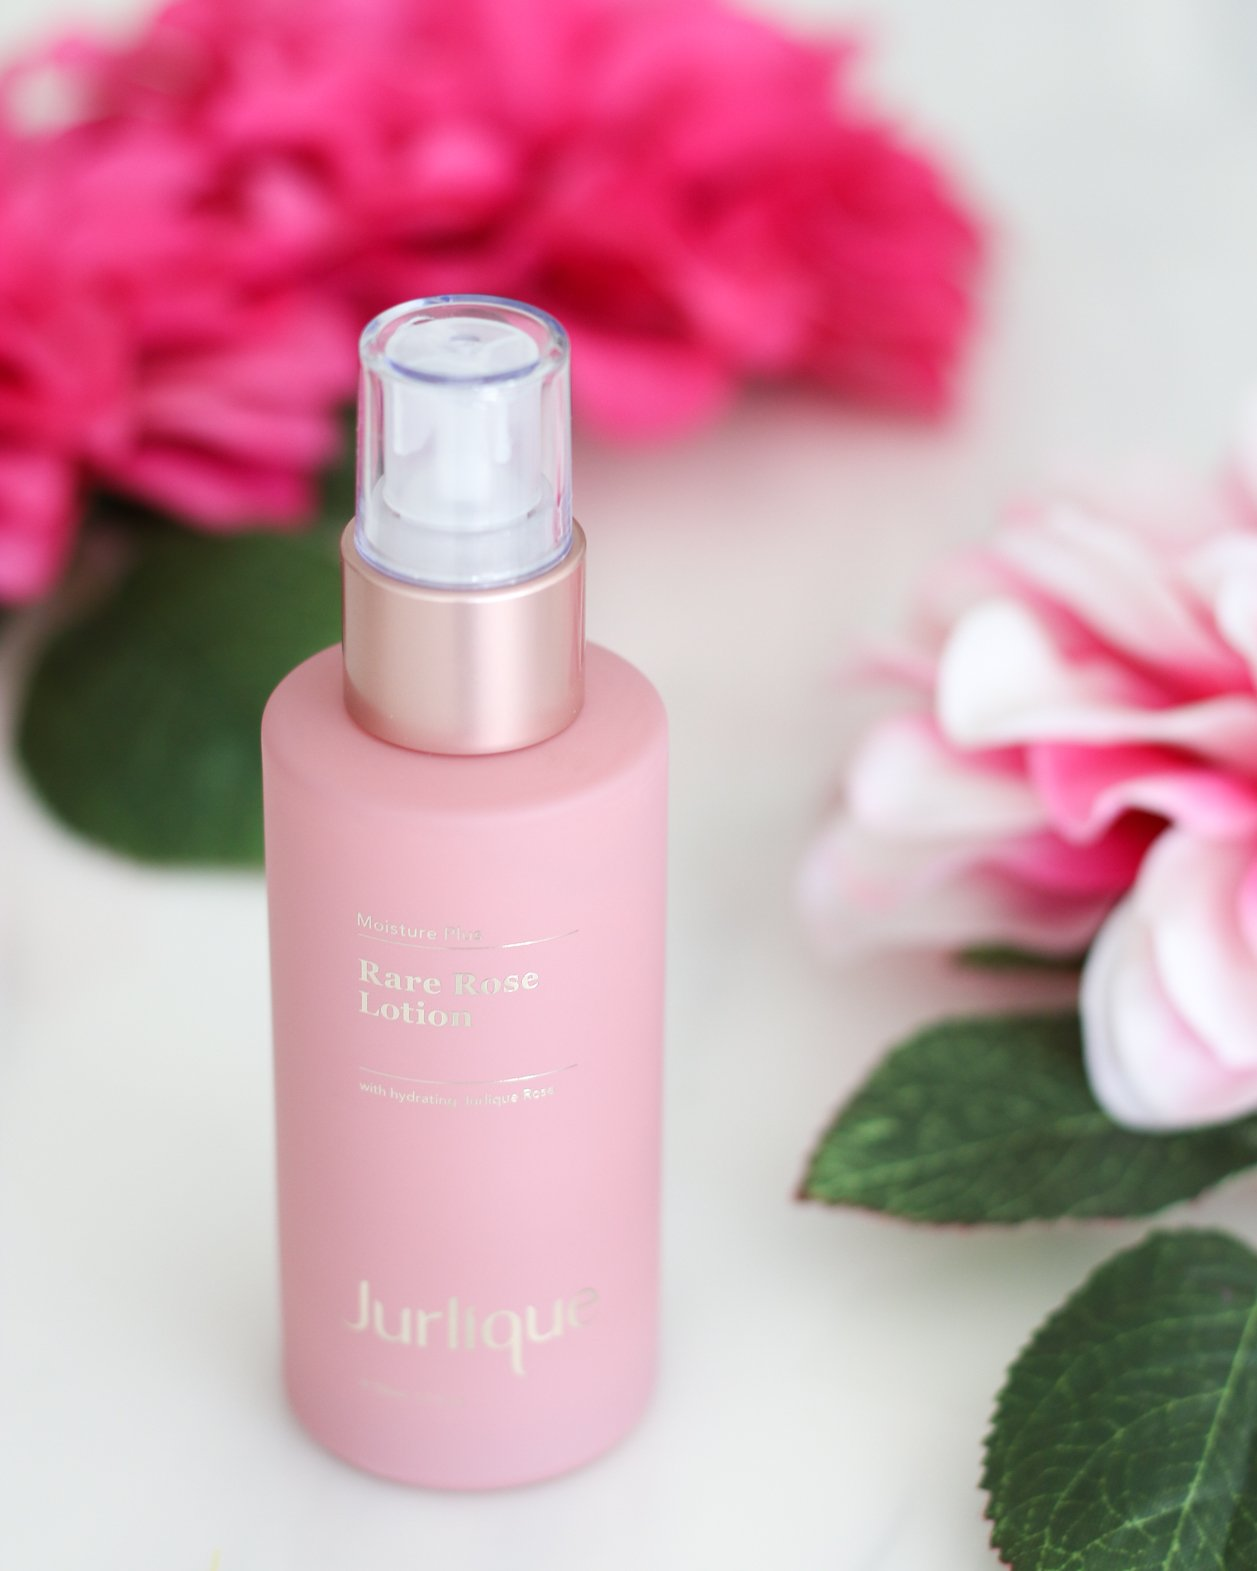 Jurlique Moisture Plus Rare Rose Lotion